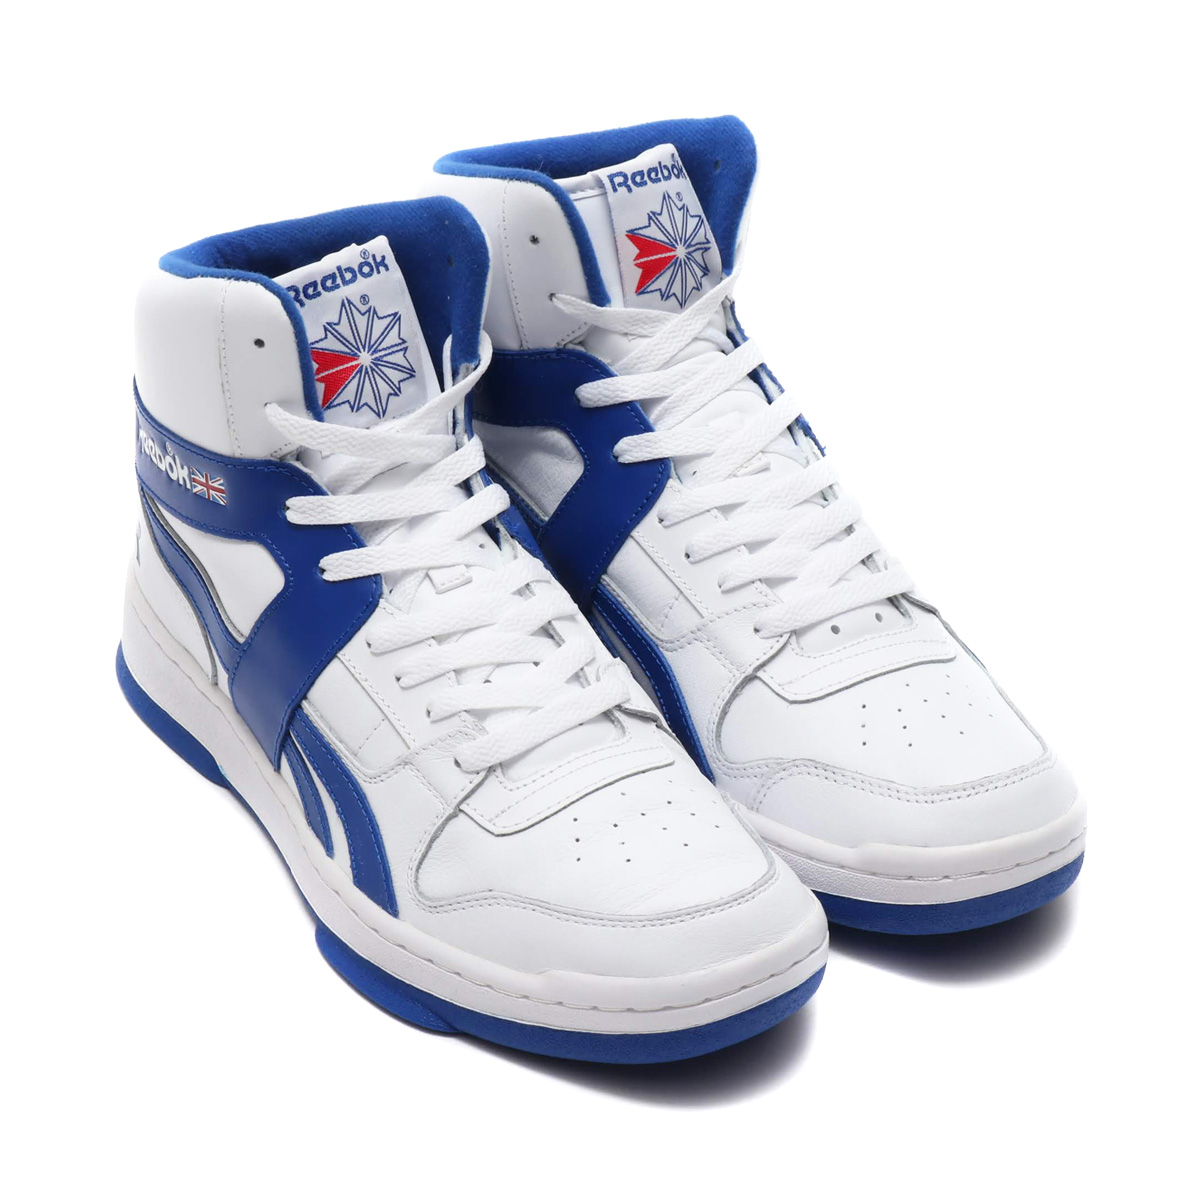 Reebok BB 5600 ARCHIVE (リーボック BB 5600 アーカイブ) (WHITE/COLLEGE ROYAL/EXCELLENT RED)18FW-S